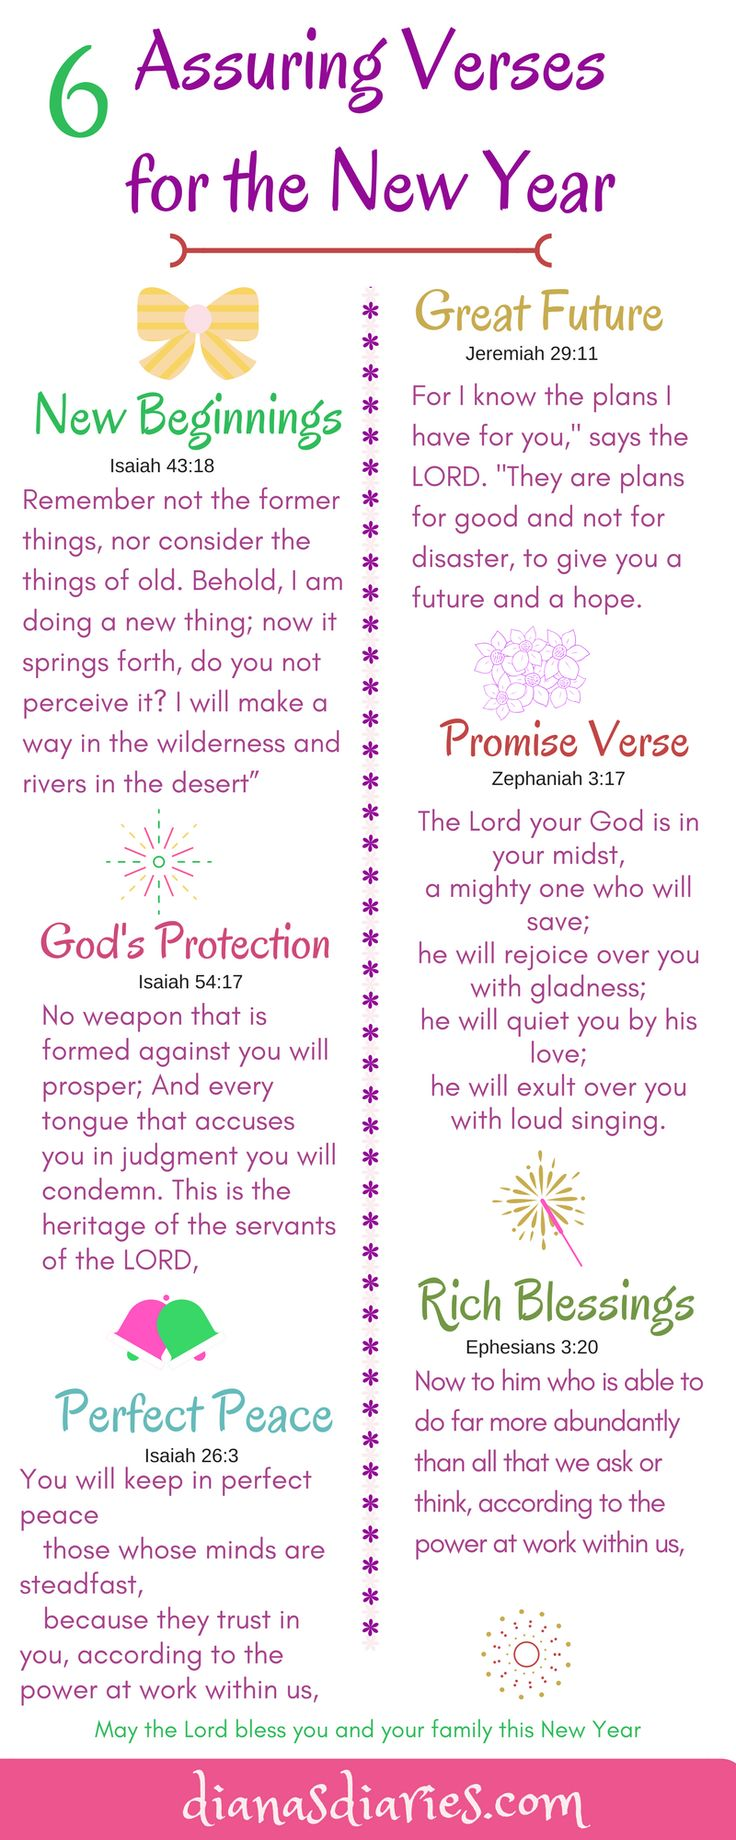 May the Lord God enrich your new year with New beginnings away from your past, Perfect peace about future, a Holy Promise, a Great Future, Heavenly Blessings, and Protection from the Devil's plots.  |Subscribe and Print|, |Bible Verse| #NewYear  #Printables Shalom, Diana